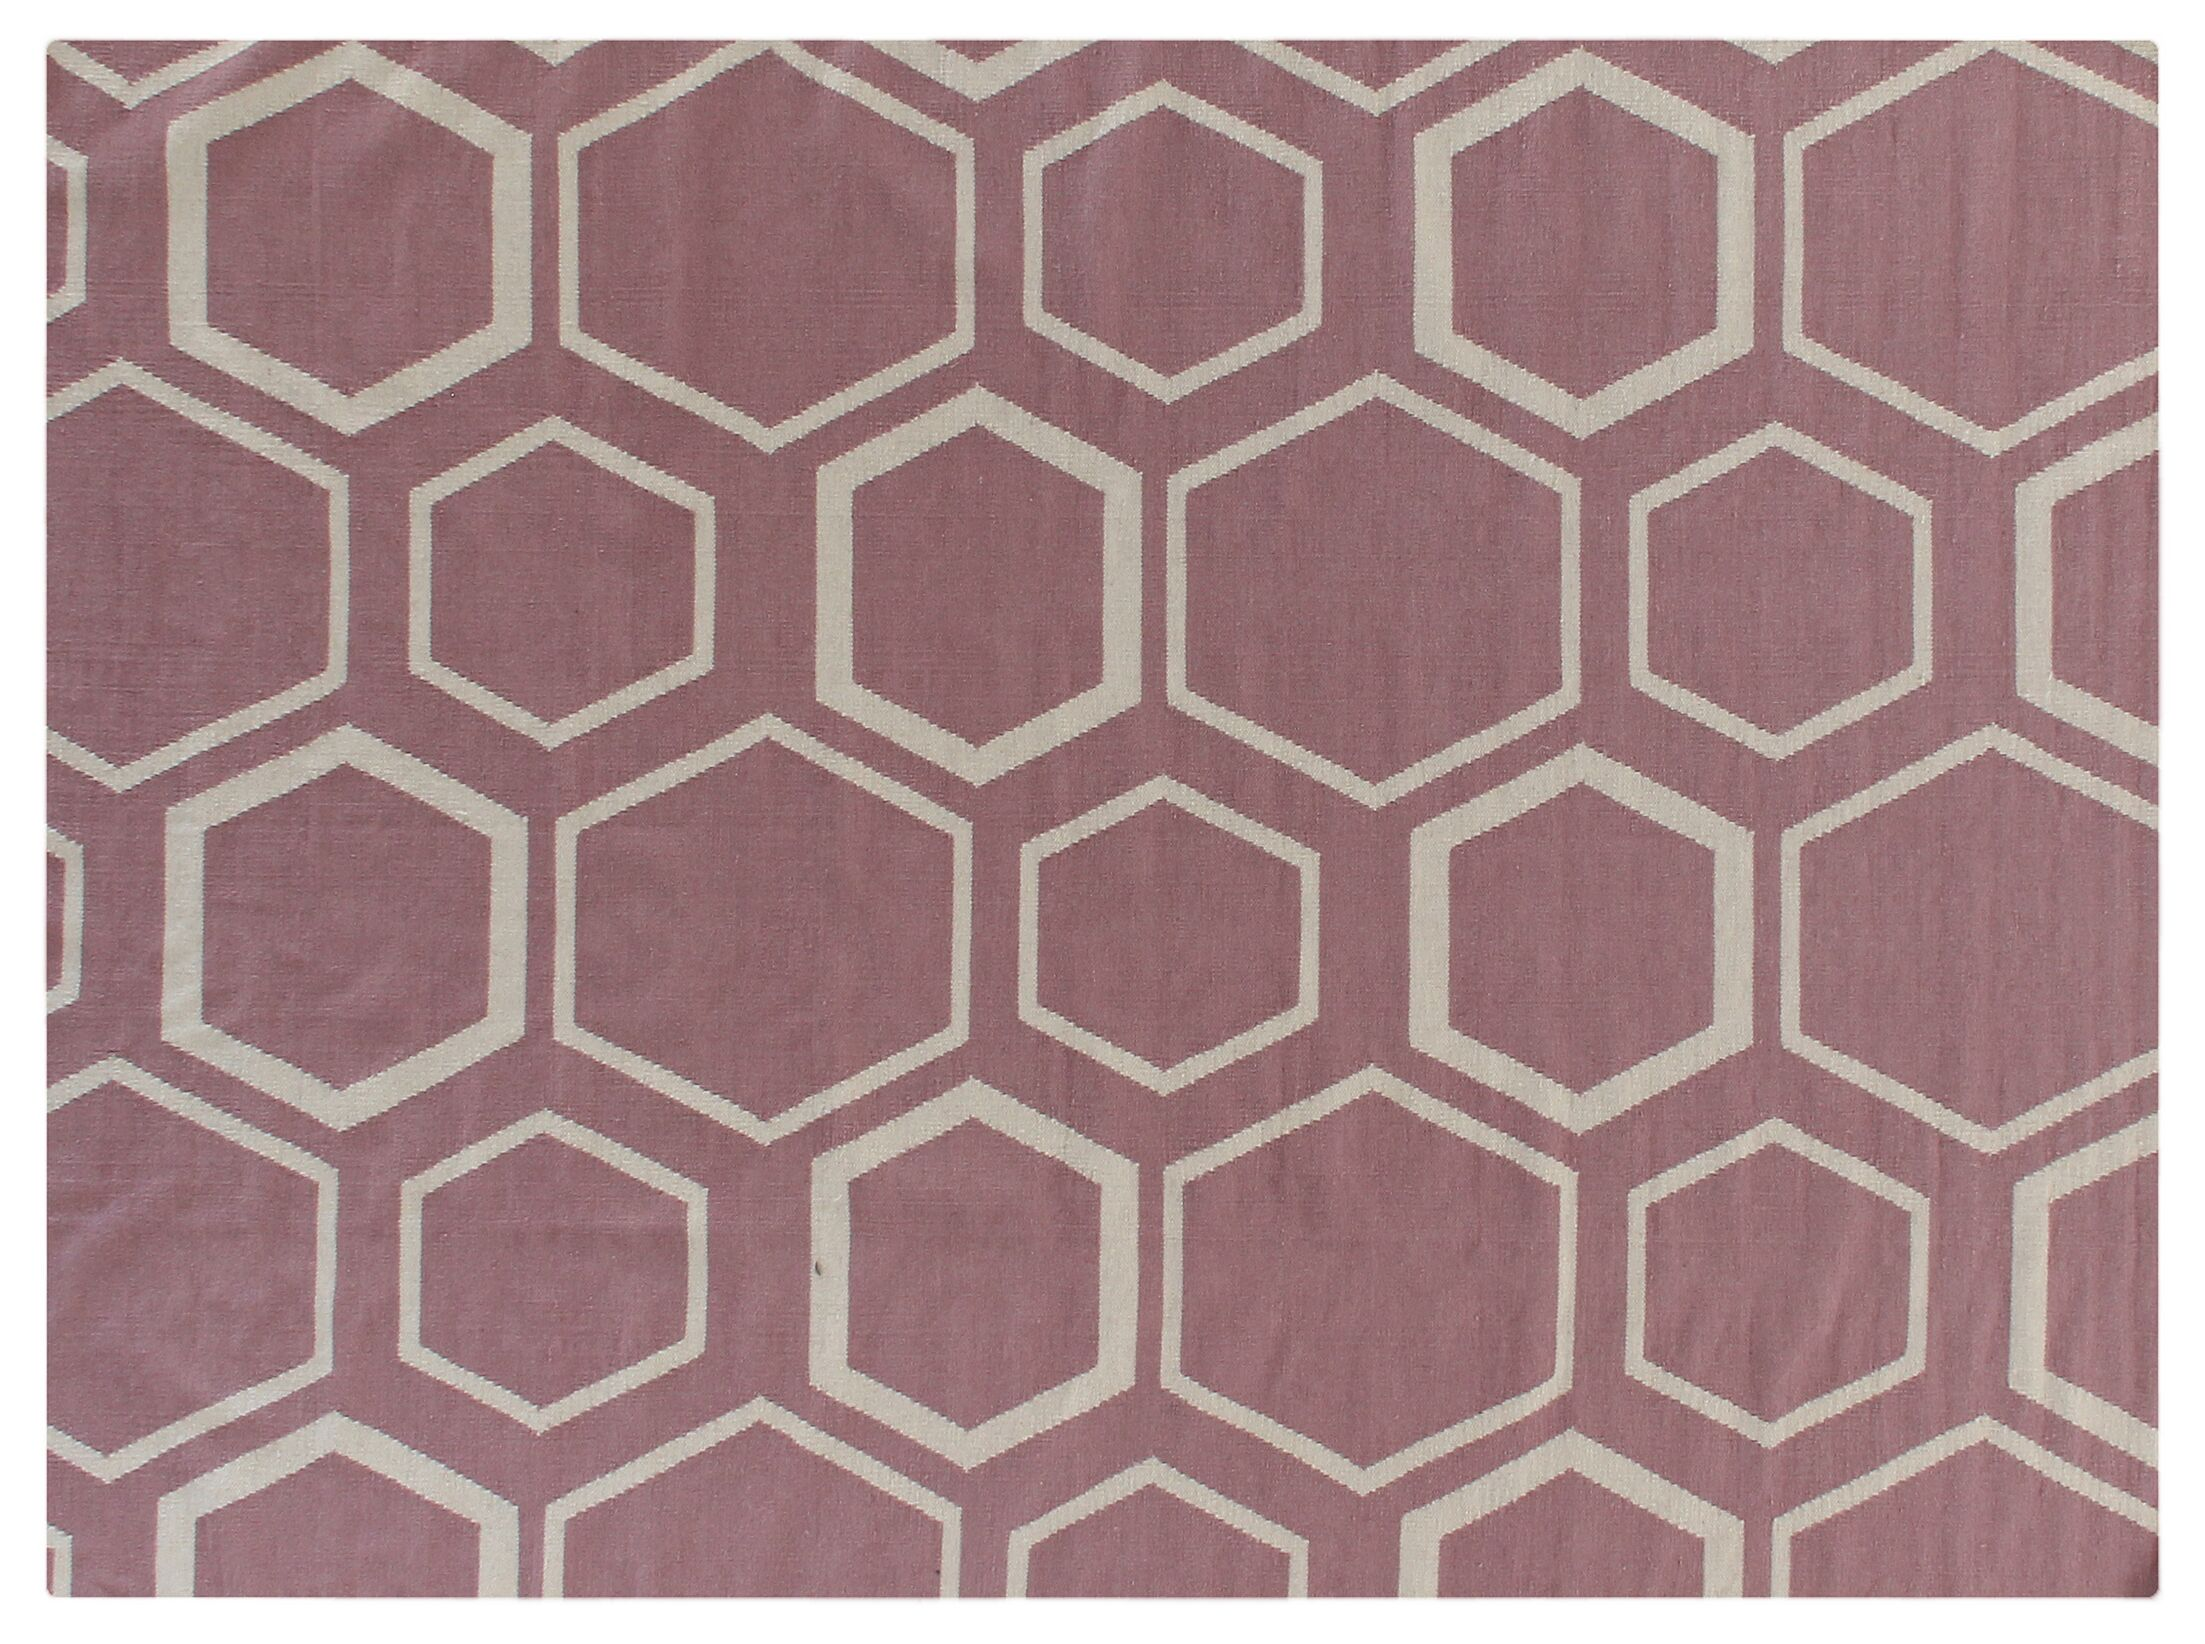 Hand-Woven Wool Pink/White Area Rug Rug Size: Rectangle 8' x 11'